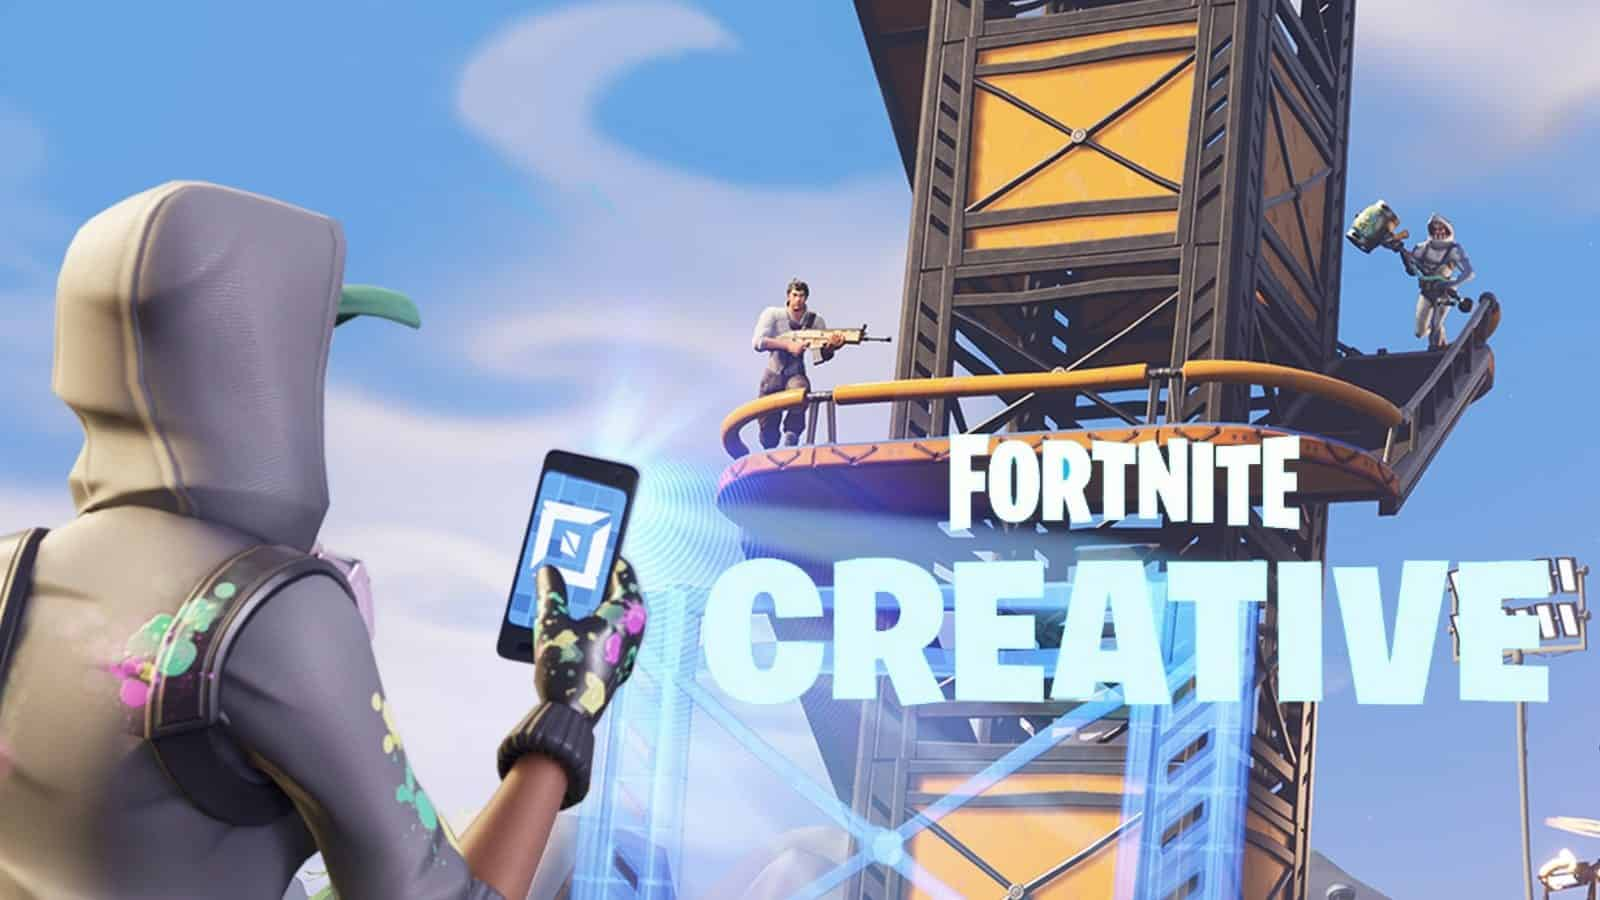 Fortnite creative 1.